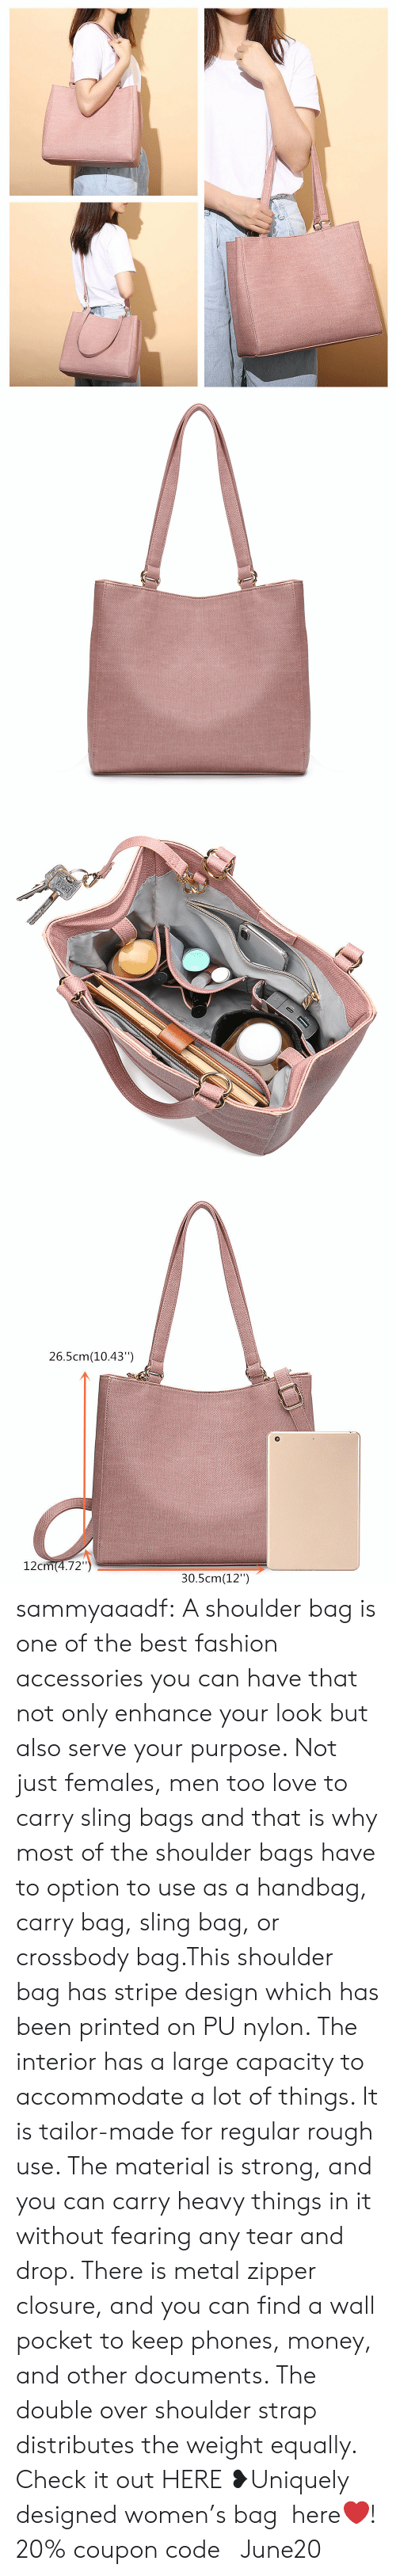 """handbag: 26.5cm(10.43"""")  12cm(4.72"""")  30.5cm(12"""") sammyaaadf: A shoulder bag is one of the best fashion accessories you can have that not only enhance your look but also serve your purpose. Not just females, men too love to carry sling bags and that is why most of the shoulder bags have to option to use as a handbag, carry bag, sling bag, or crossbody bag.This shoulder bag has stripe design which has been printed on PU nylon. The interior has a large capacity to accommodate a lot of things. It is tailor-made for regular rough use. The material is strong, and you can carry heavy things in it without fearing any tear and drop. There is metal zipper closure, and you can find a wall pocket to keep phones, money, and other documents. The double over shoulder strap distributes the weight equally.  Check it out HERE ❥Uniquely designed women's bag here❤! 20% coupon code: June20"""